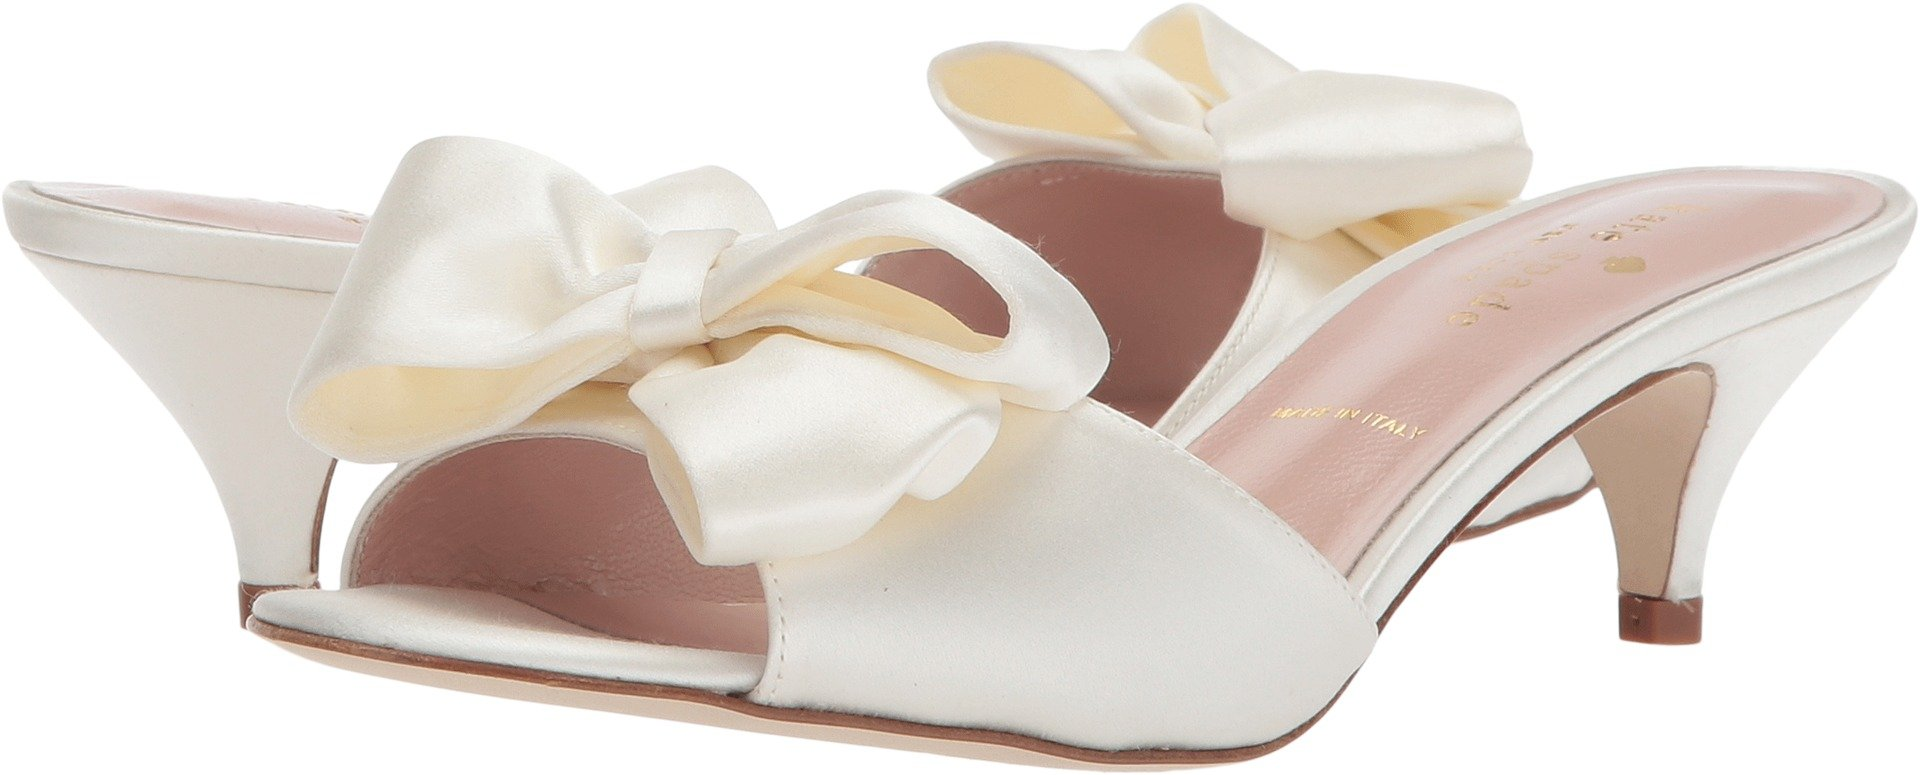 Kate Spade New York Women's Plaza Ivory Satin 10 M US